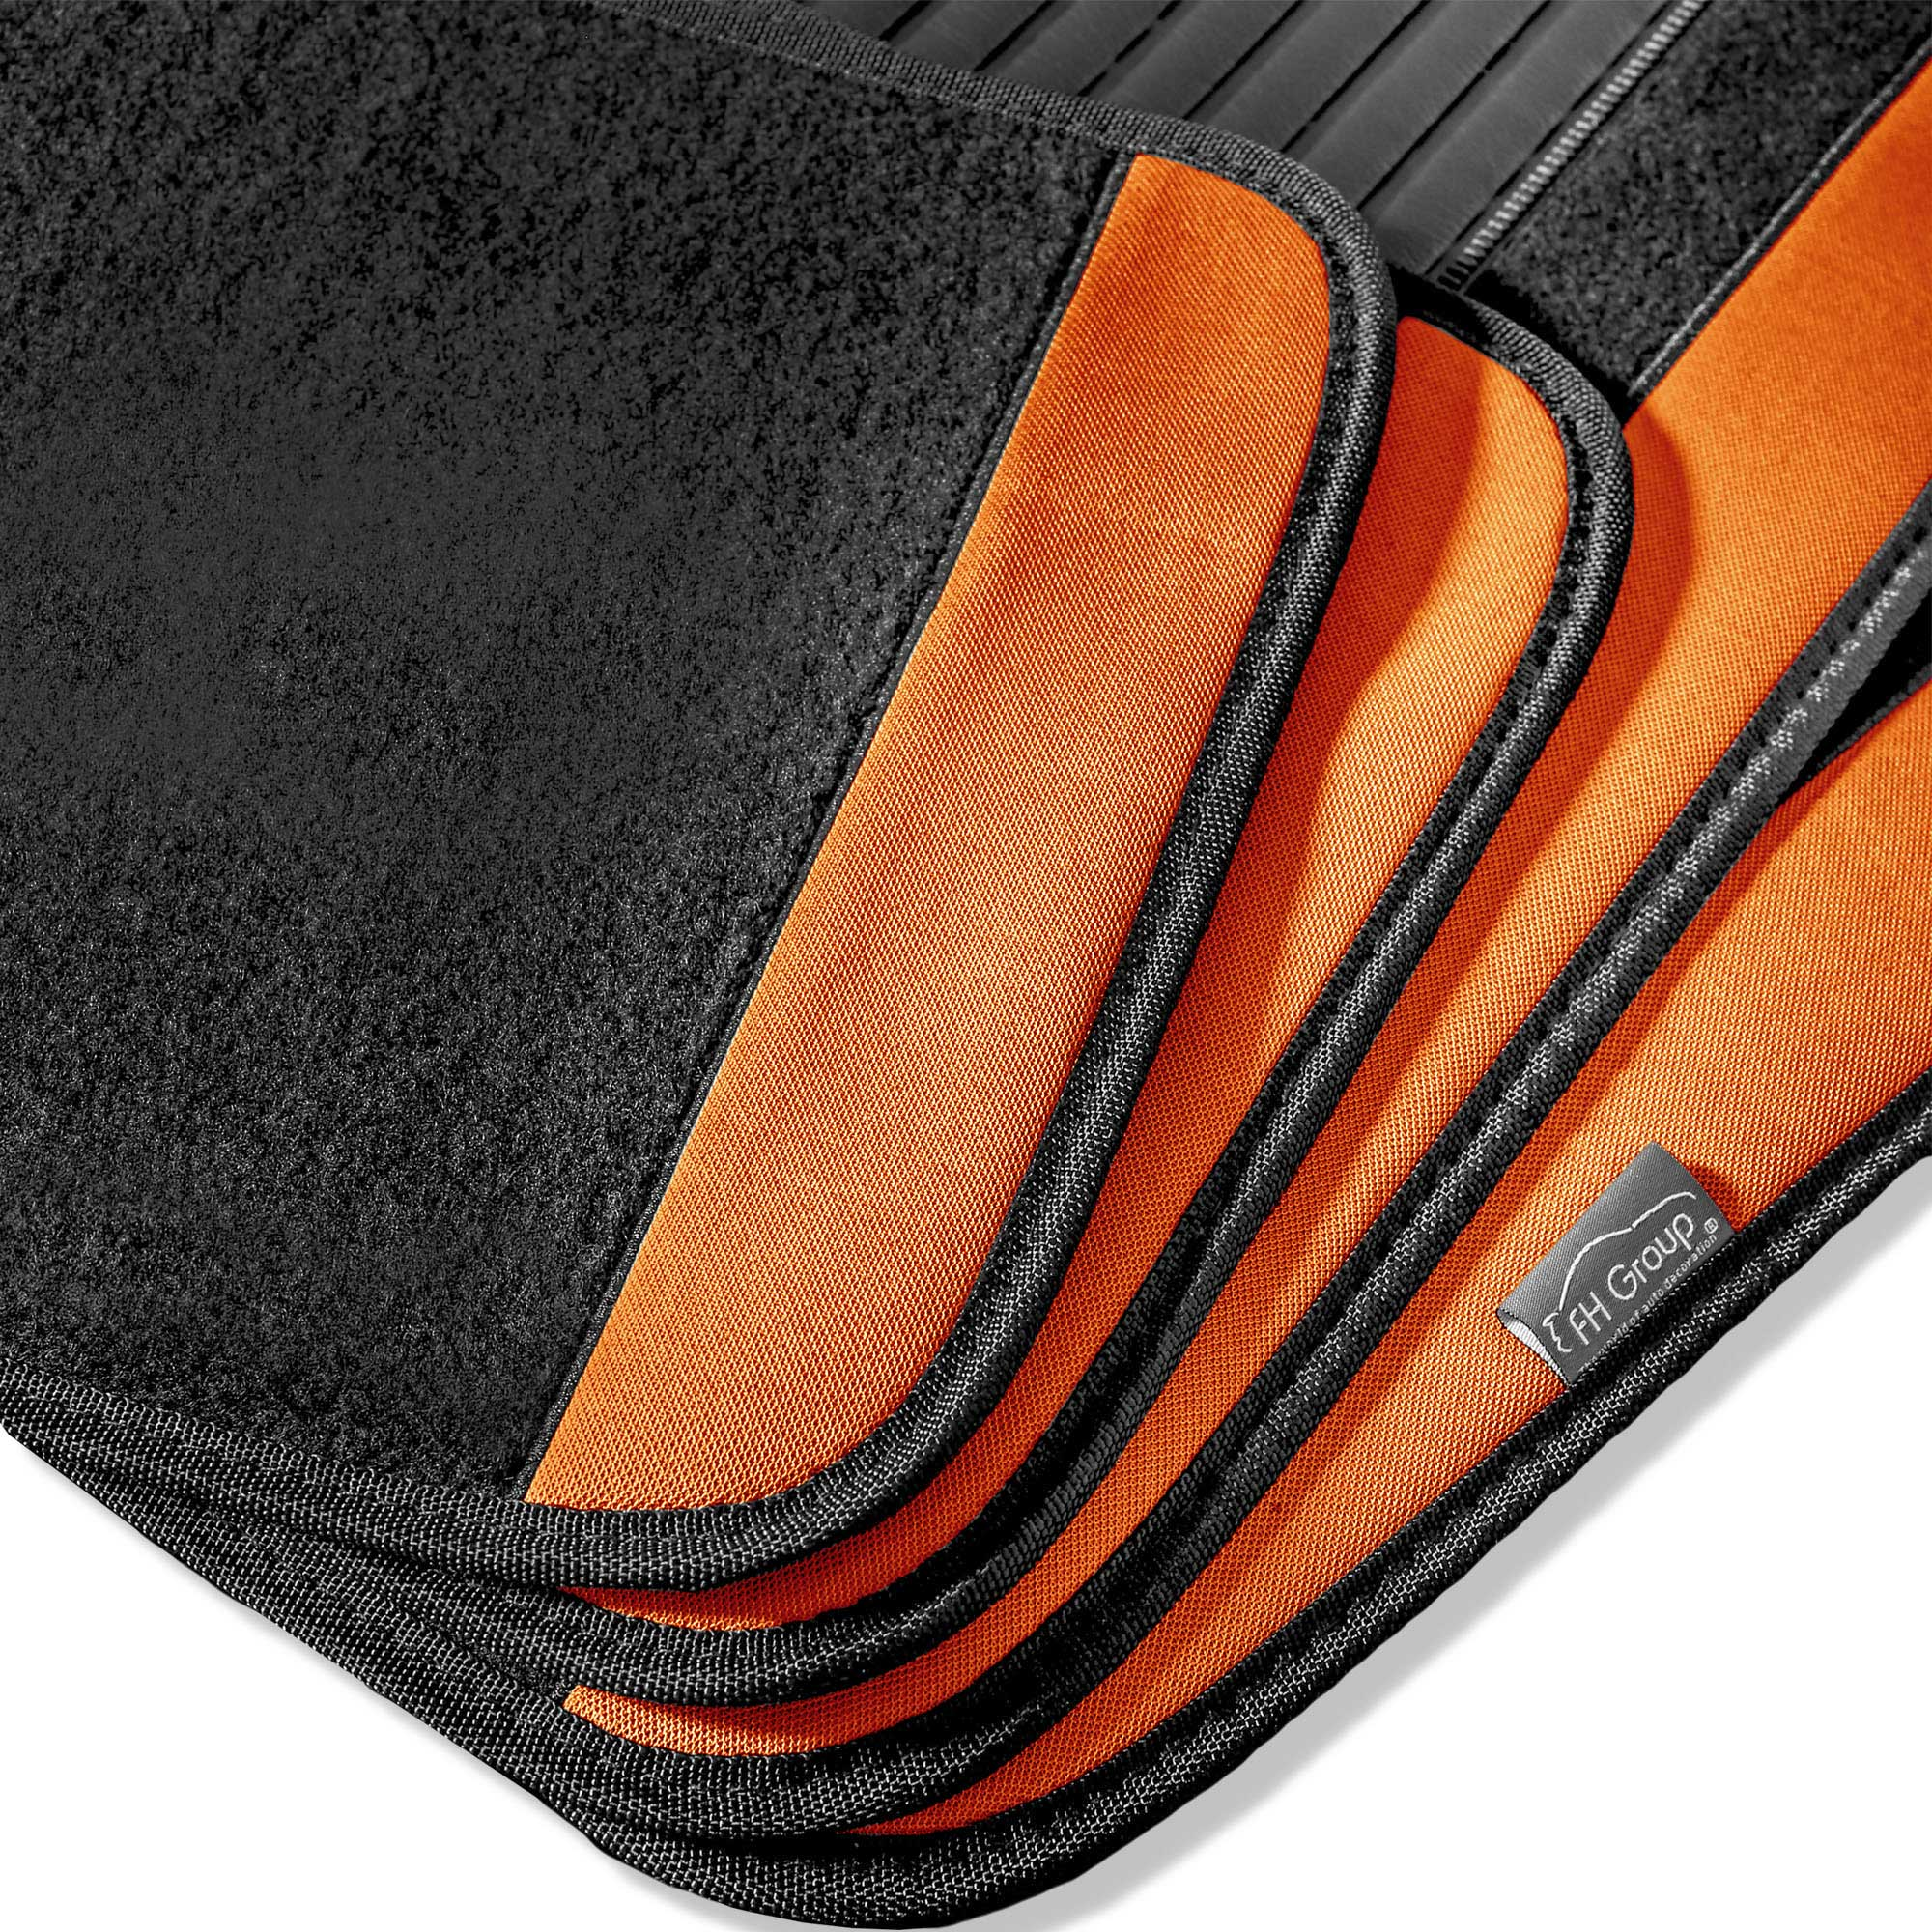 4pcs-Universal-Carpet-Floor-Mats-for-Car-SUV-Van-10-Color-Options-Full-Set thumbnail 39